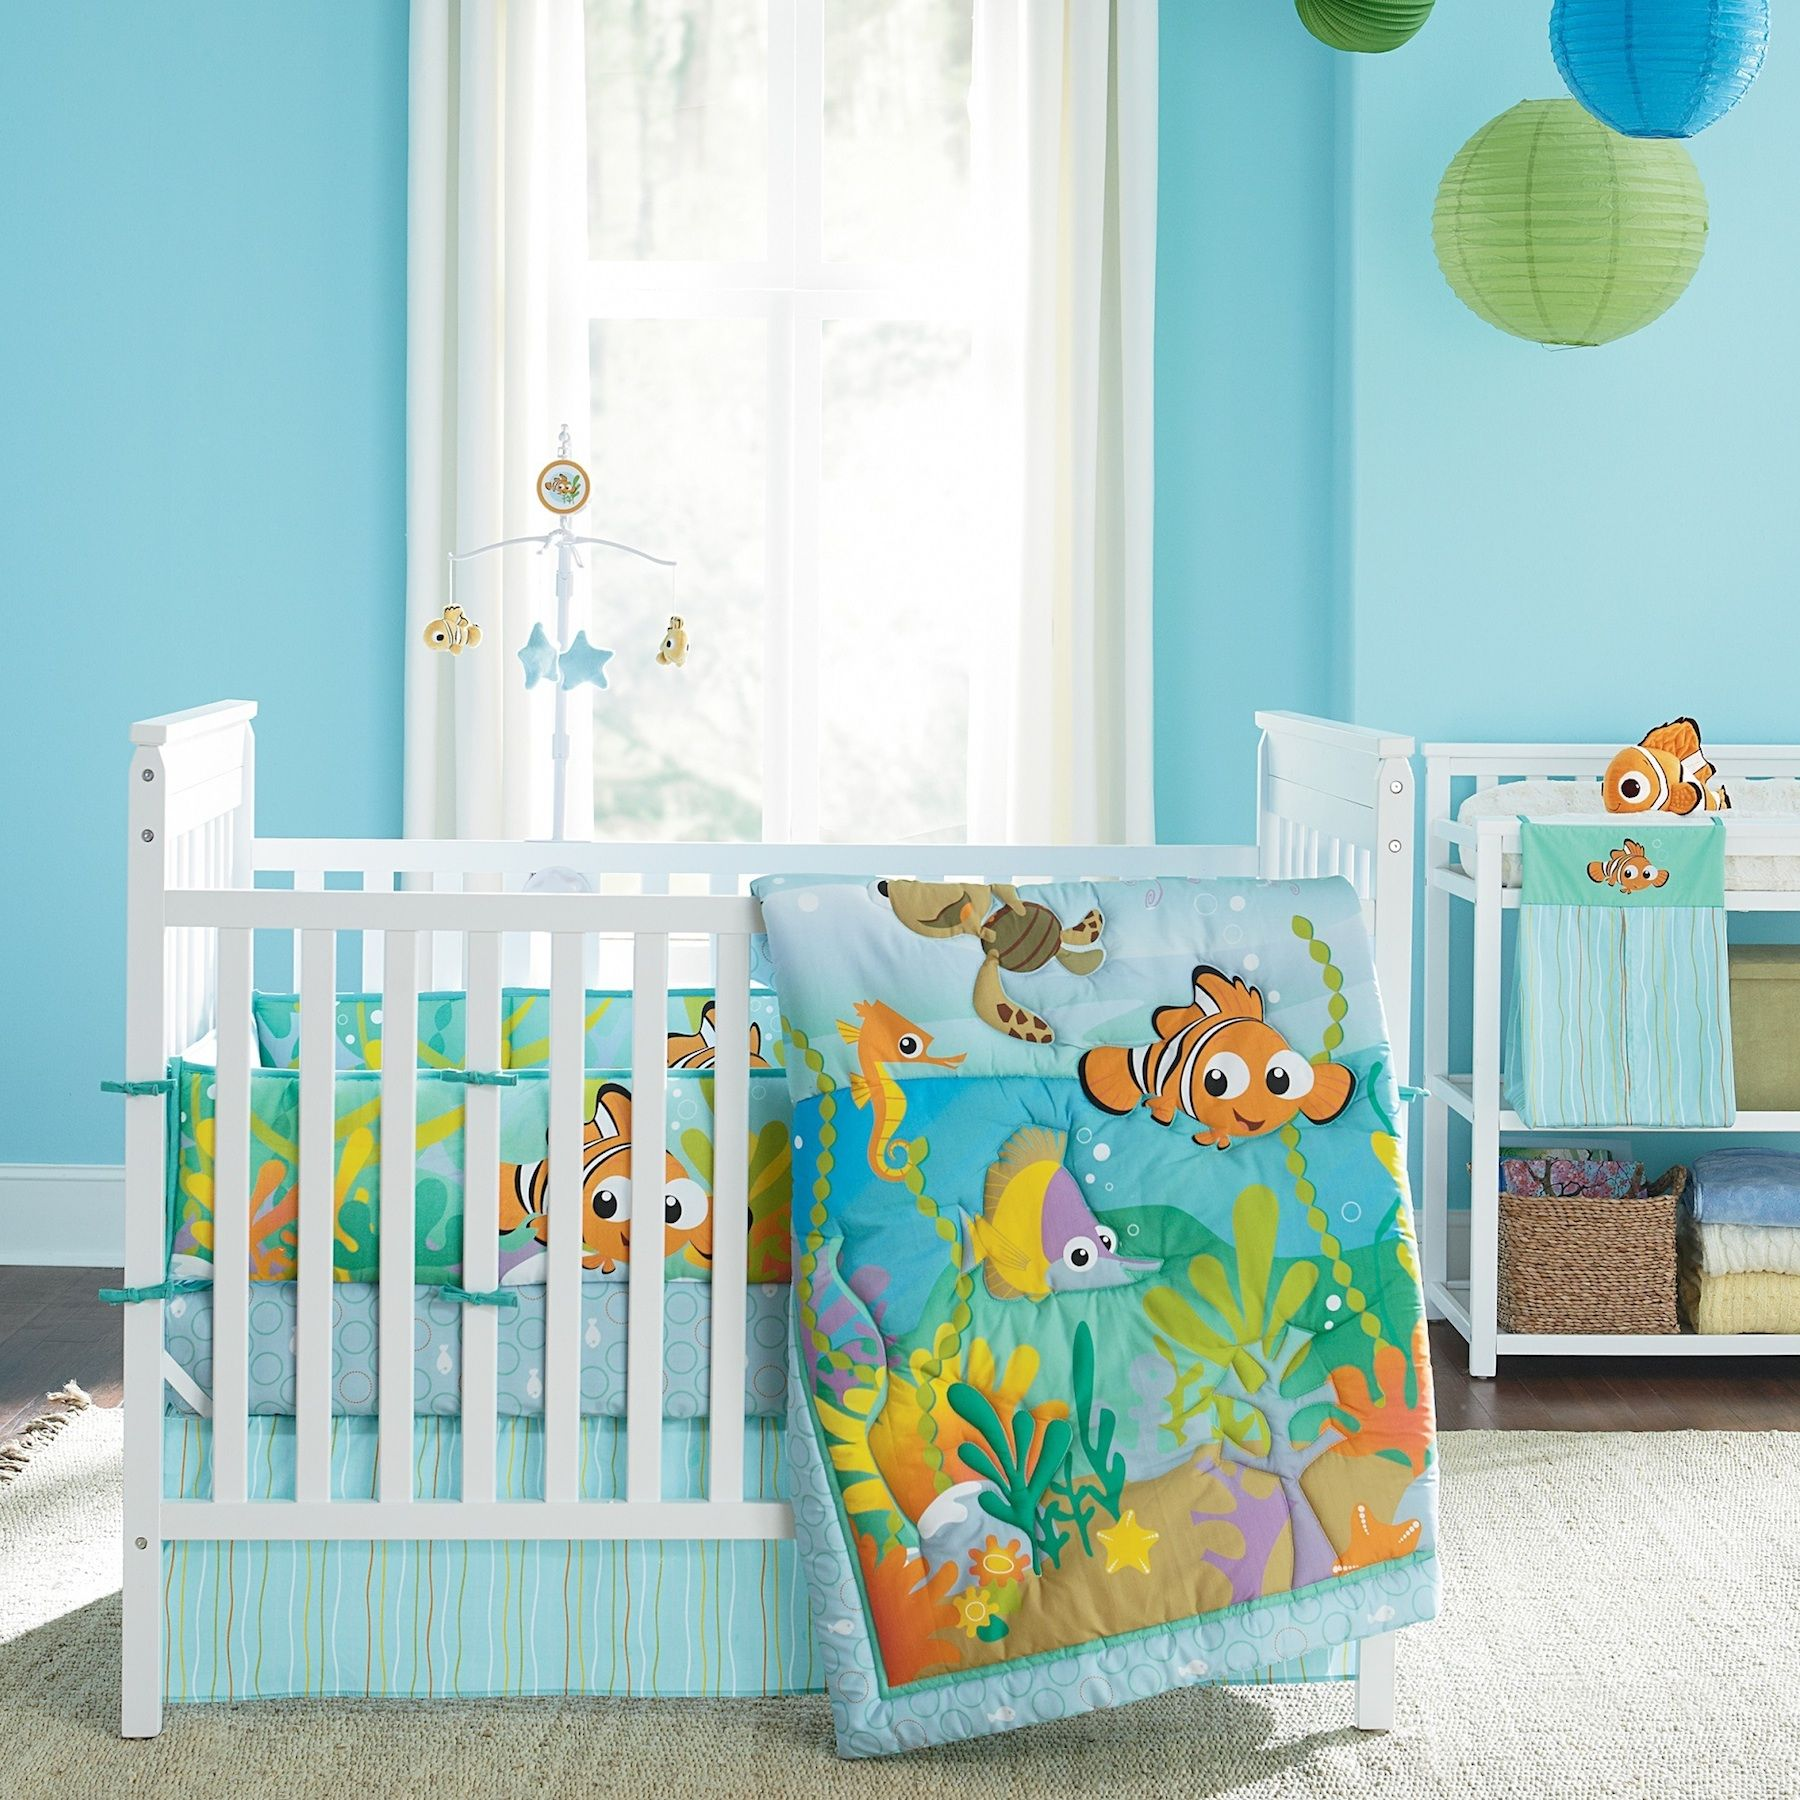 Crib for twins babies r us - Disney Baby Finding Nemo Reef 4 Piece Crib Bedding Set